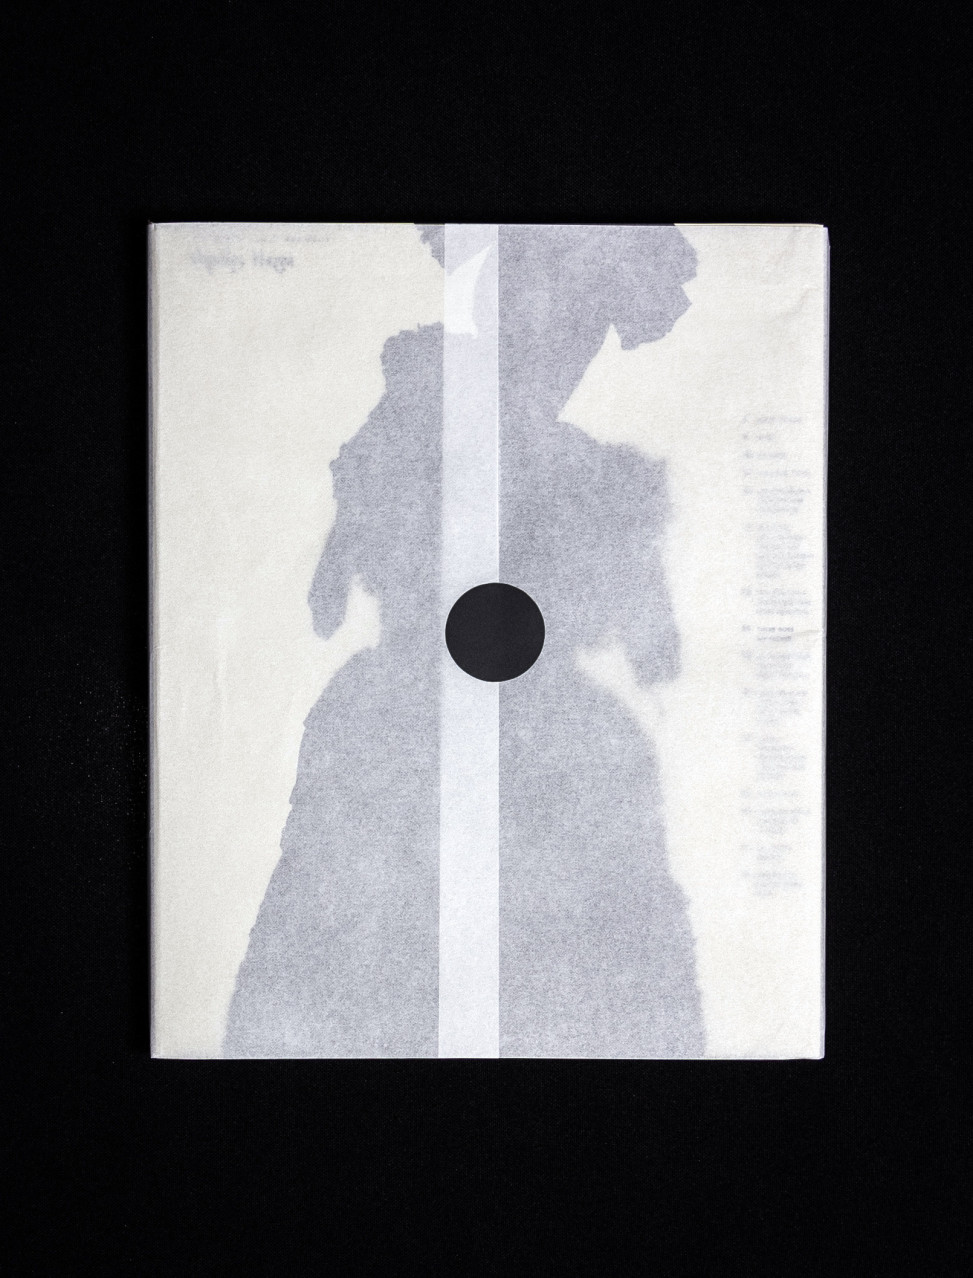 a dark silhouette of a doll on the cover of a book wrapped in translucent paper